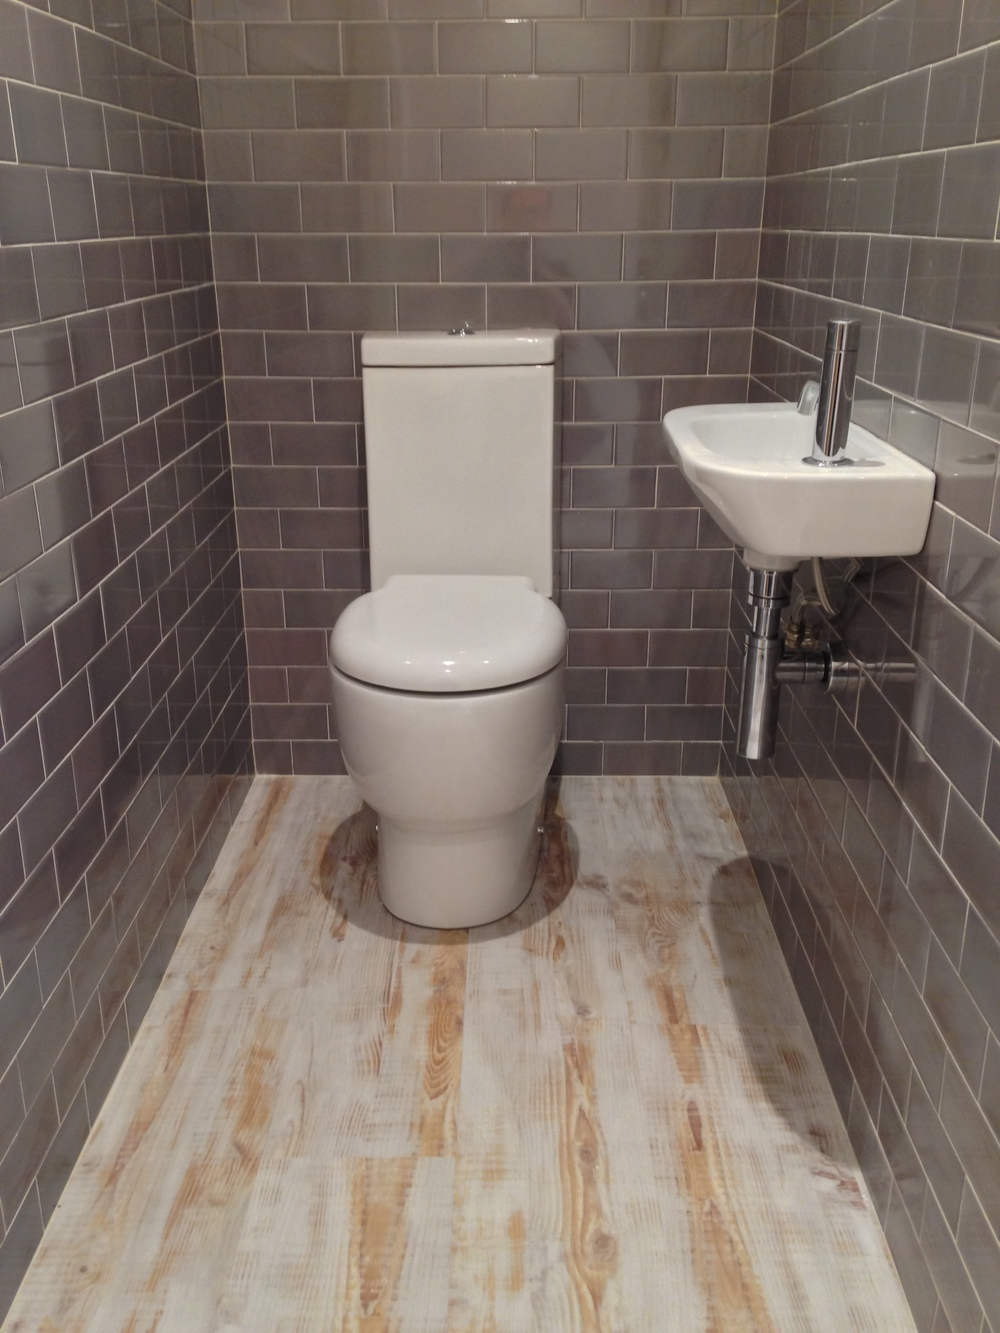 Bathroom fitters sheffield bwi bathrooms with integrity for A c bathrooms sheffield